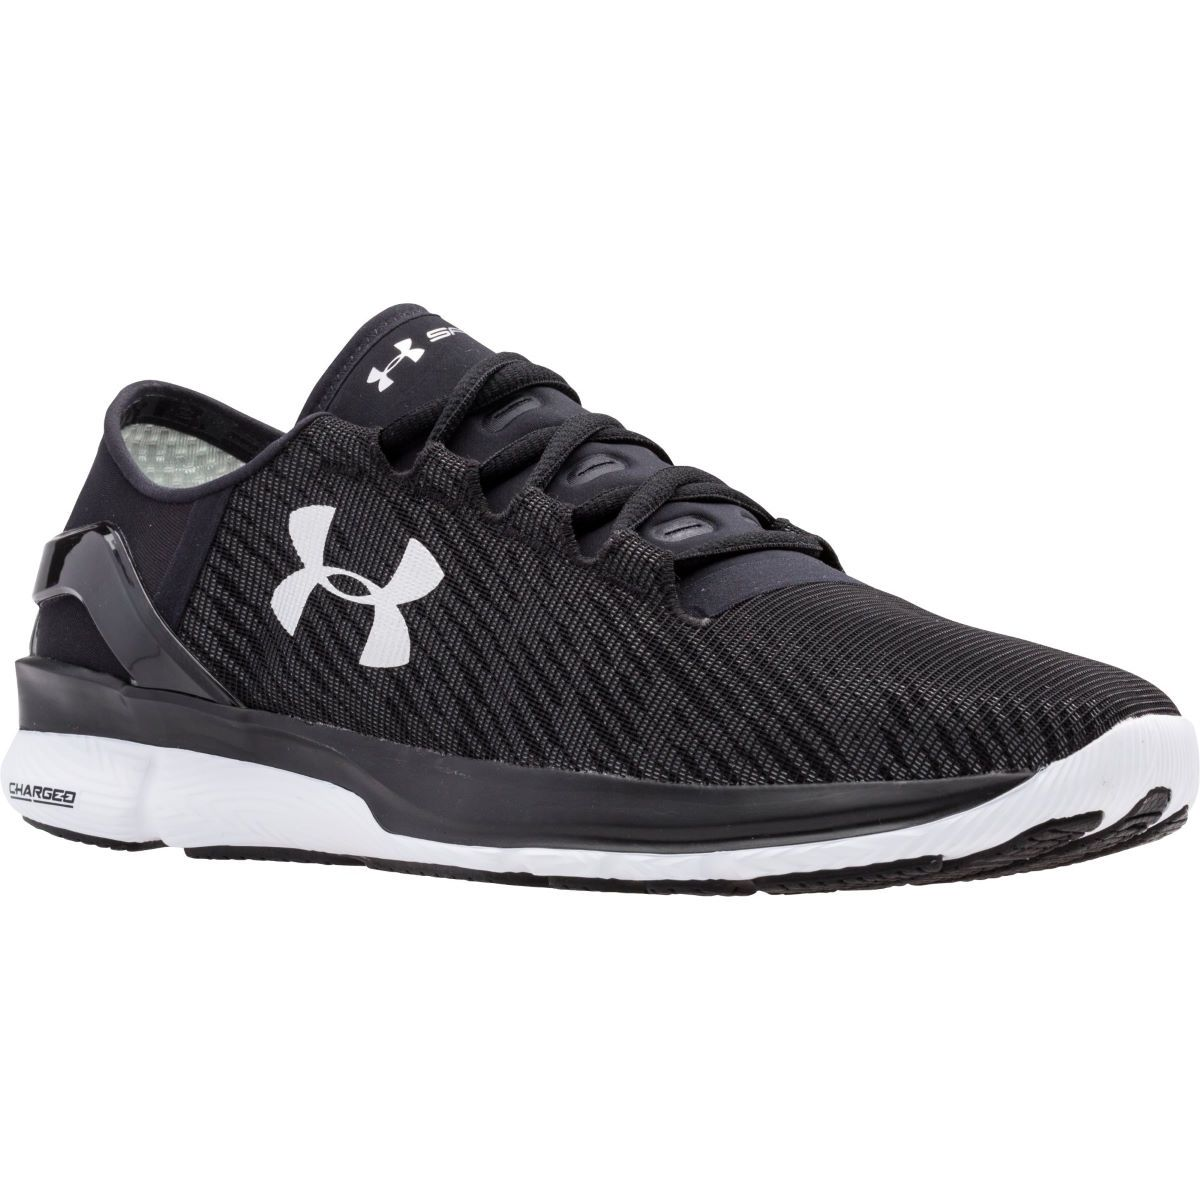 Under Armour Speedform Turbulence Reflective Shoes Ss16 Racing Running Shoes Reflective Shoes Running Shoes Shoes